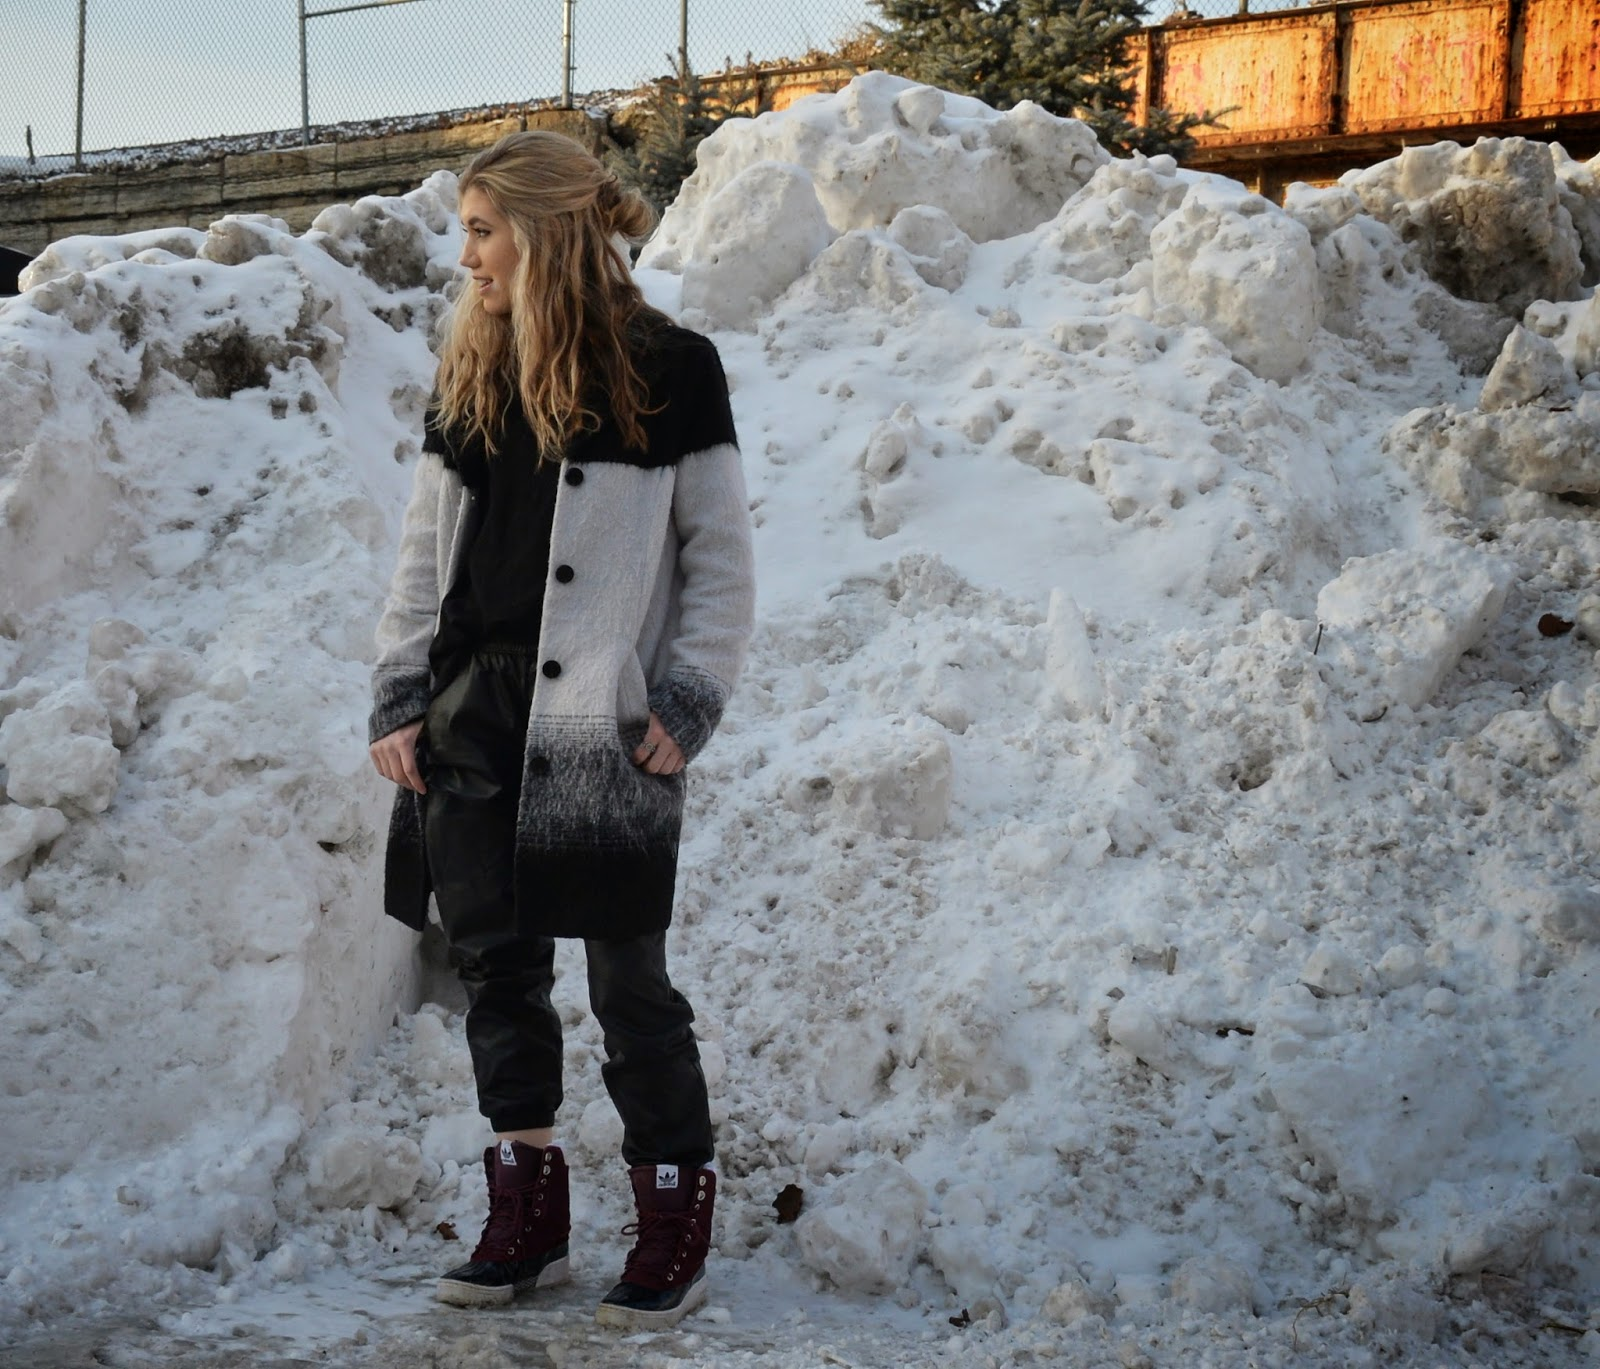 Blogger,sporty,street style, Mermaid Waves,Snow boots,Winter Coat